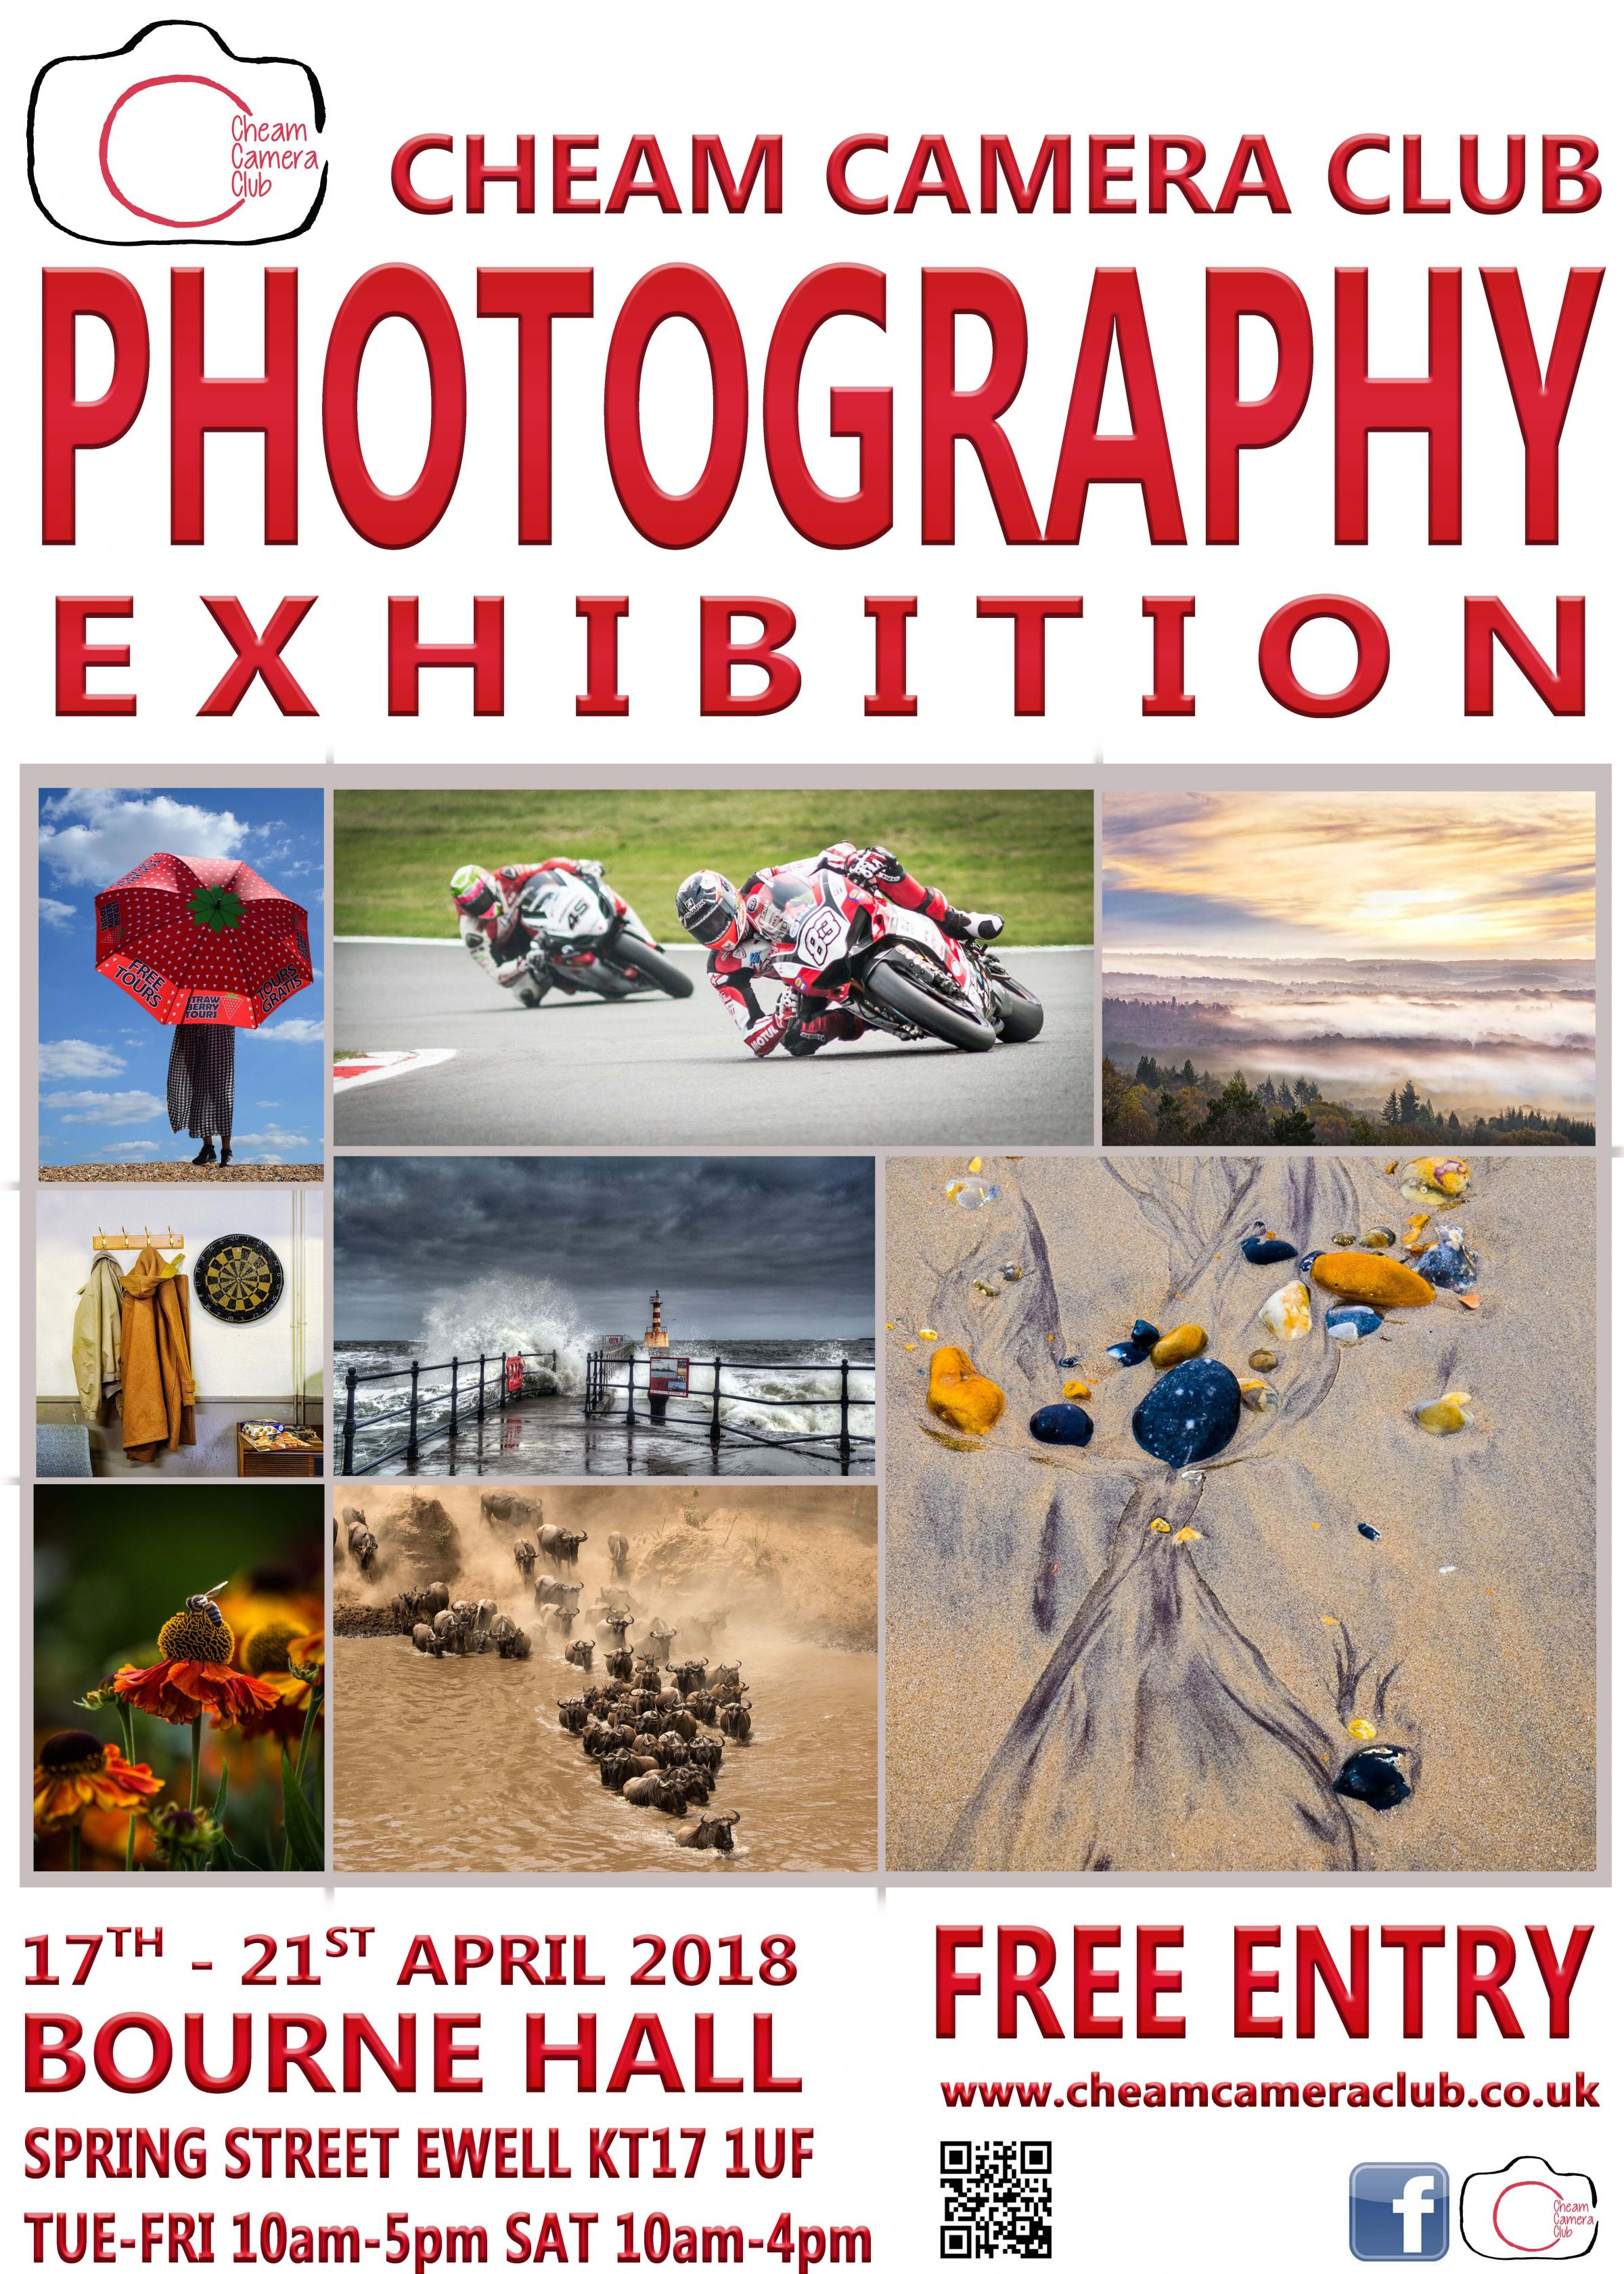 Cheam Camera Club - Annual Photography Exhibition